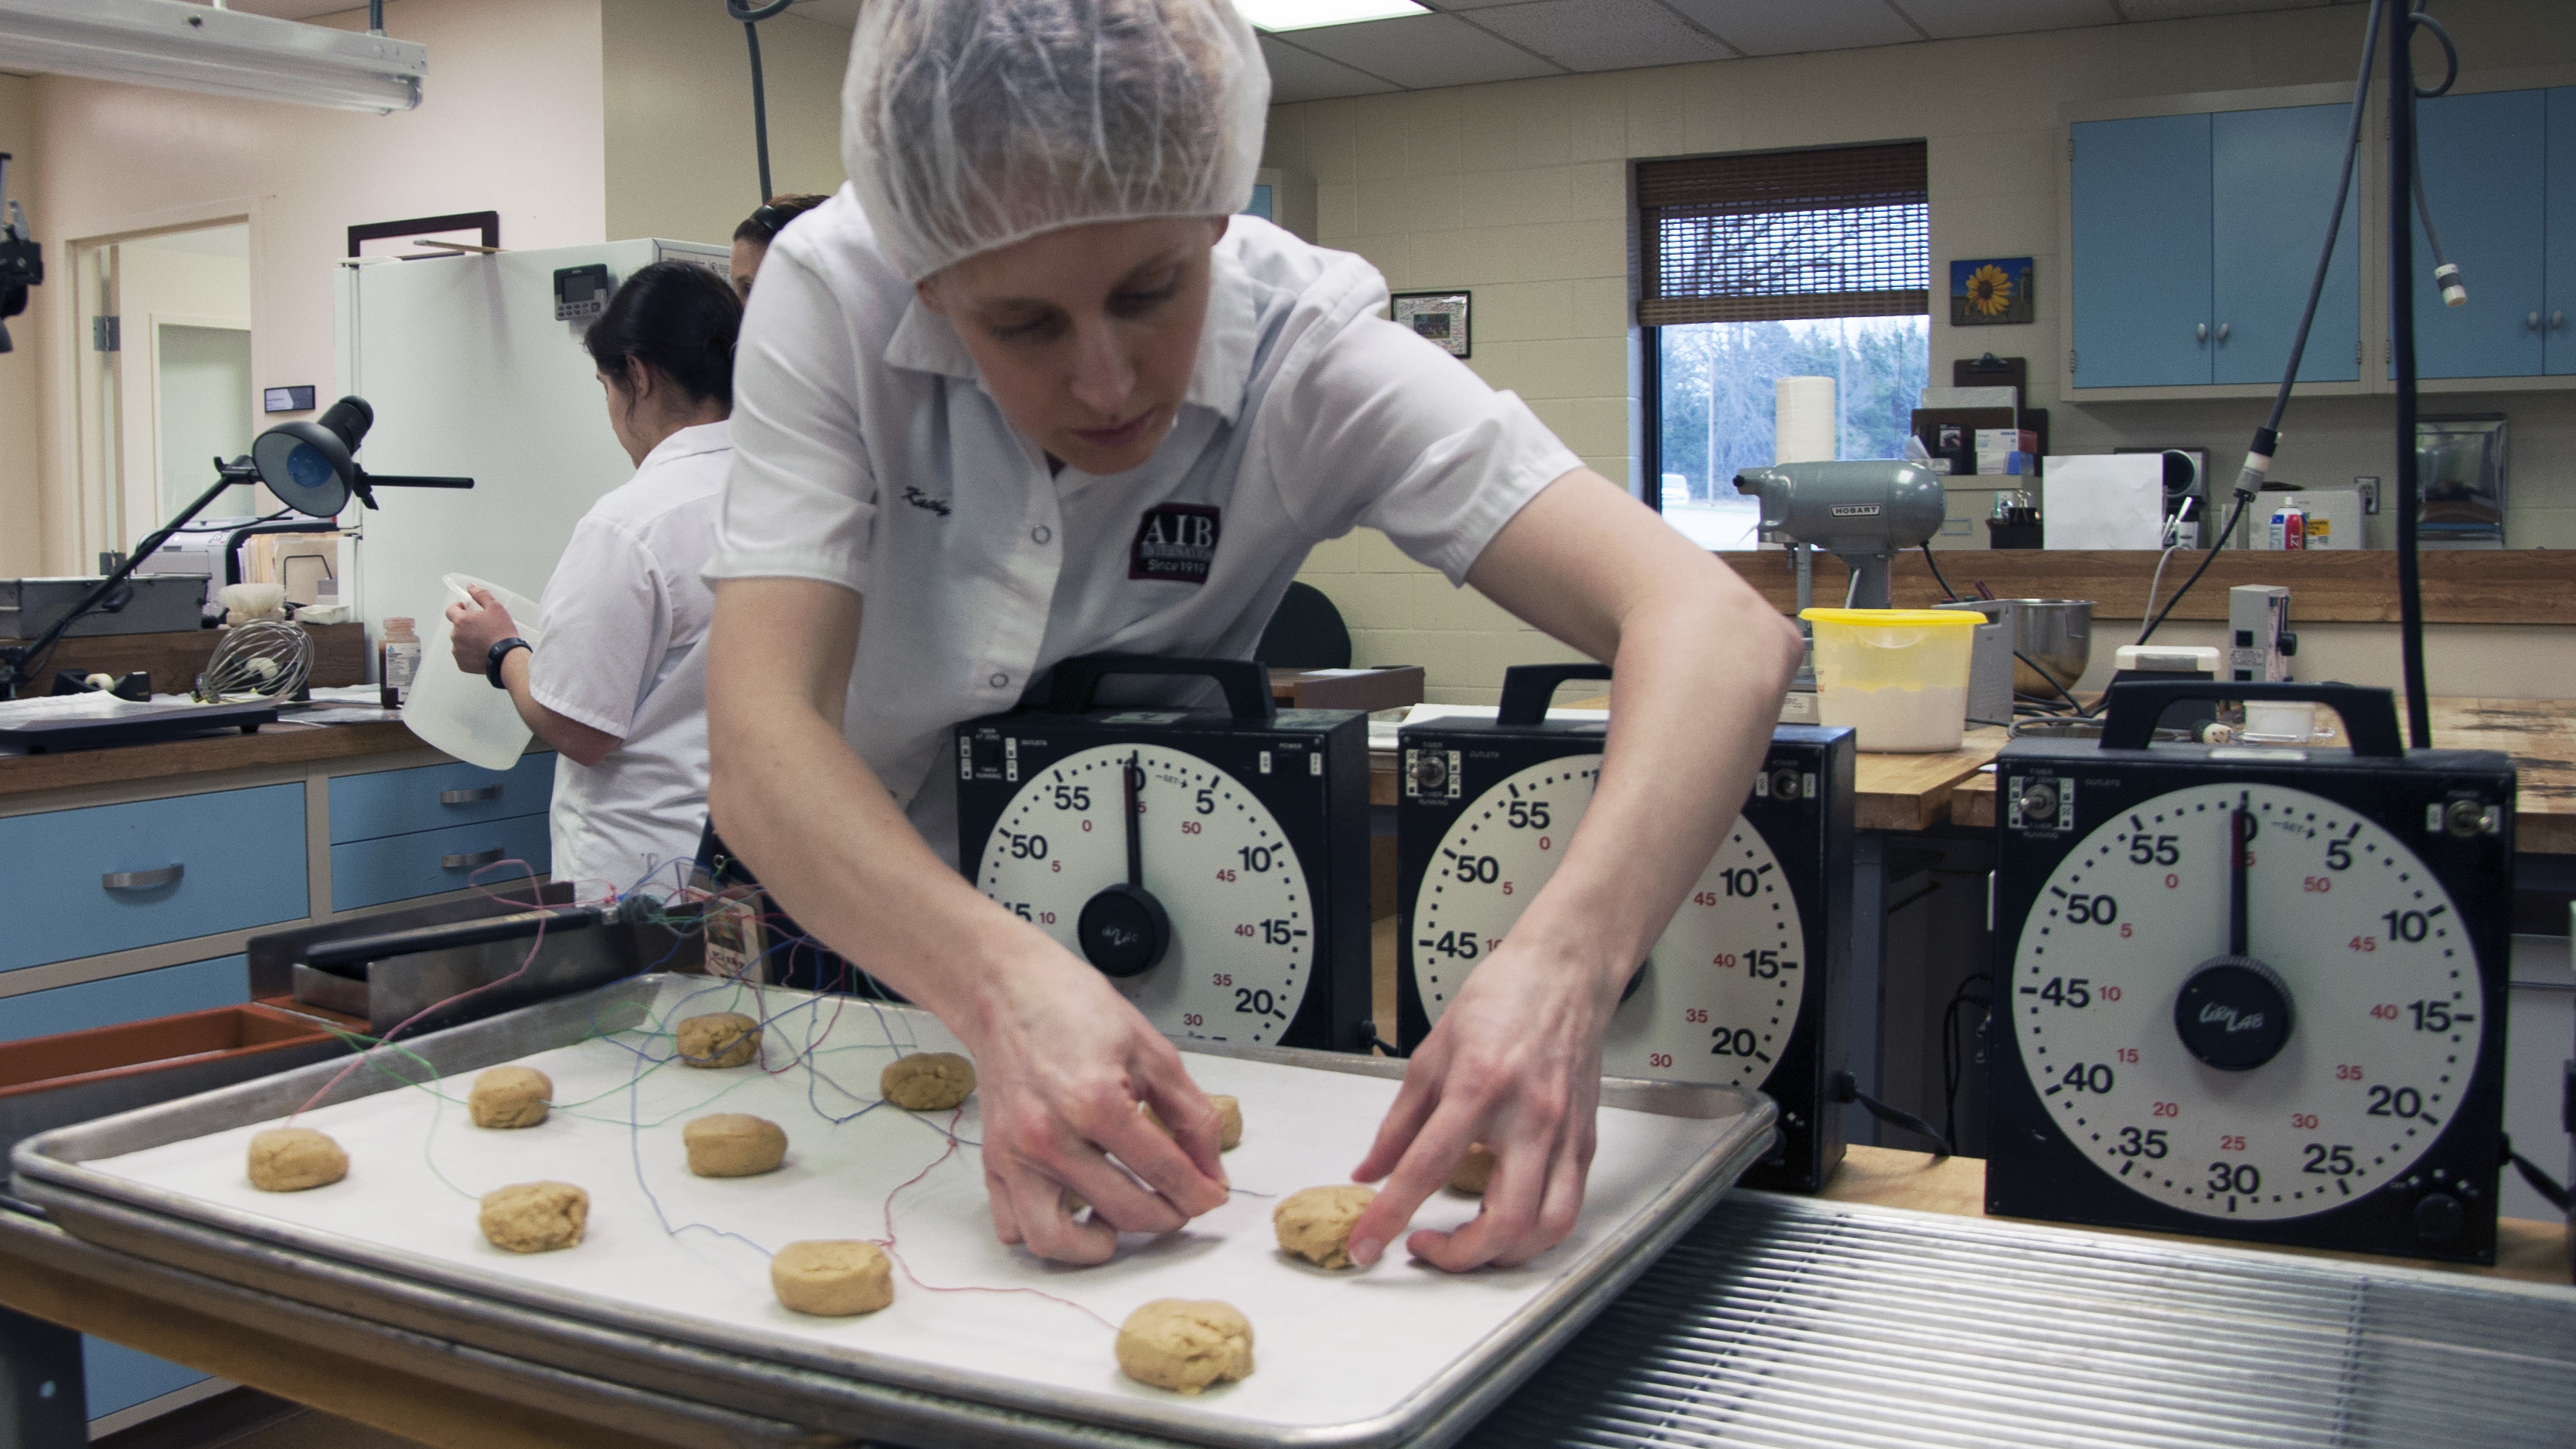 A researcher at AIB International inserts thermometers into cookie dough to monitor the baking temperature. The goal is to make sure the dough reaches the temperature needed to kill any bacteria inside.